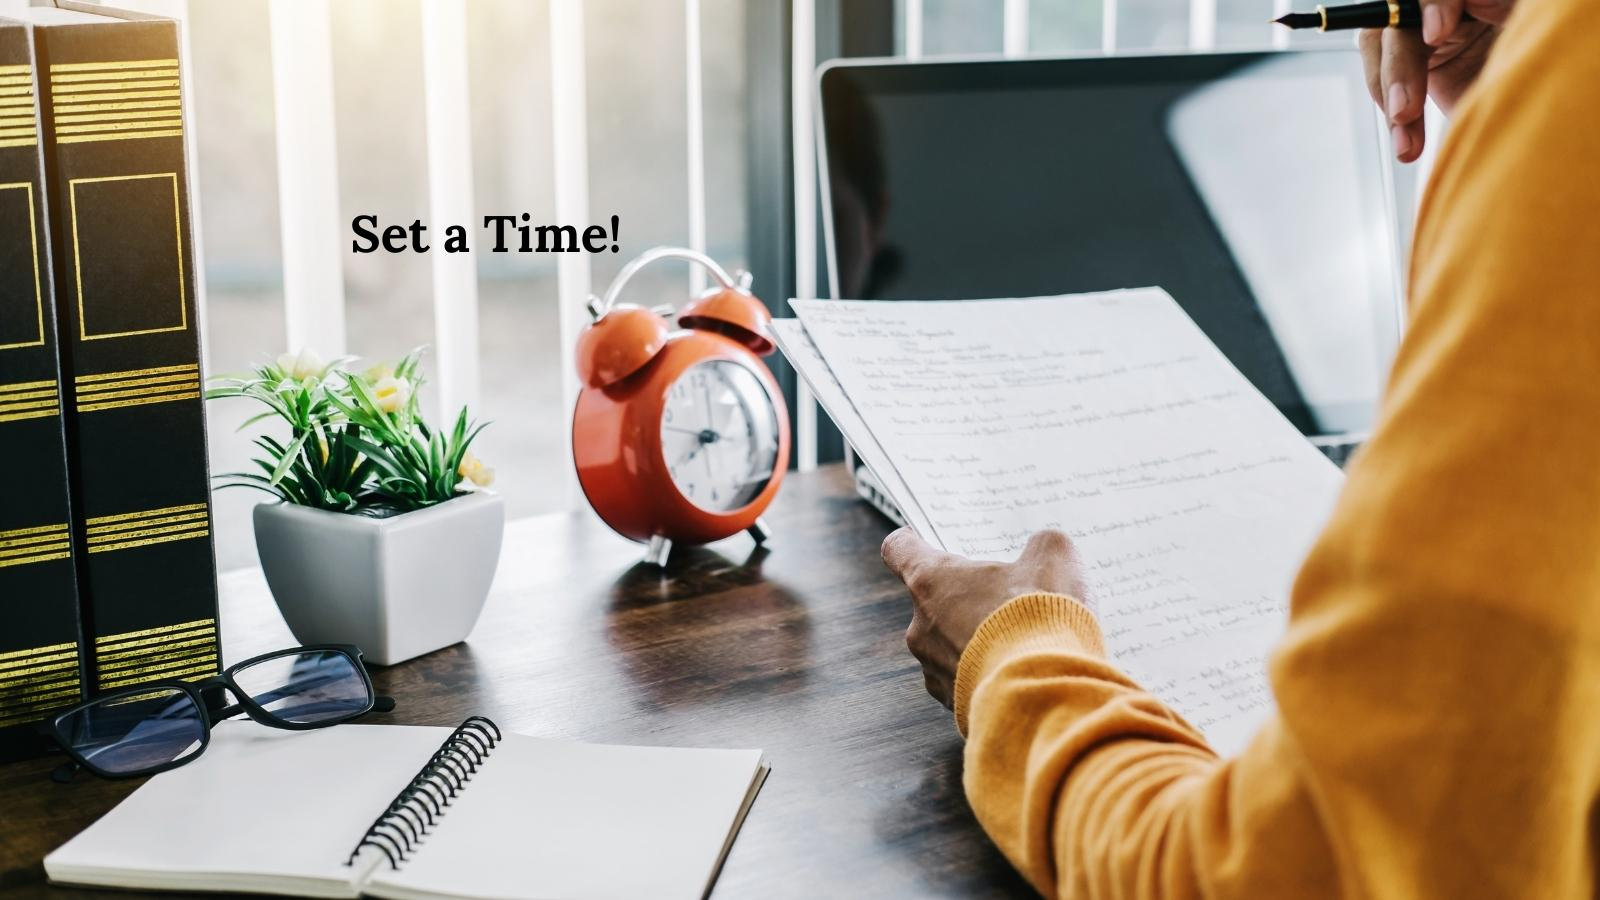 freelancers learn how to set a time